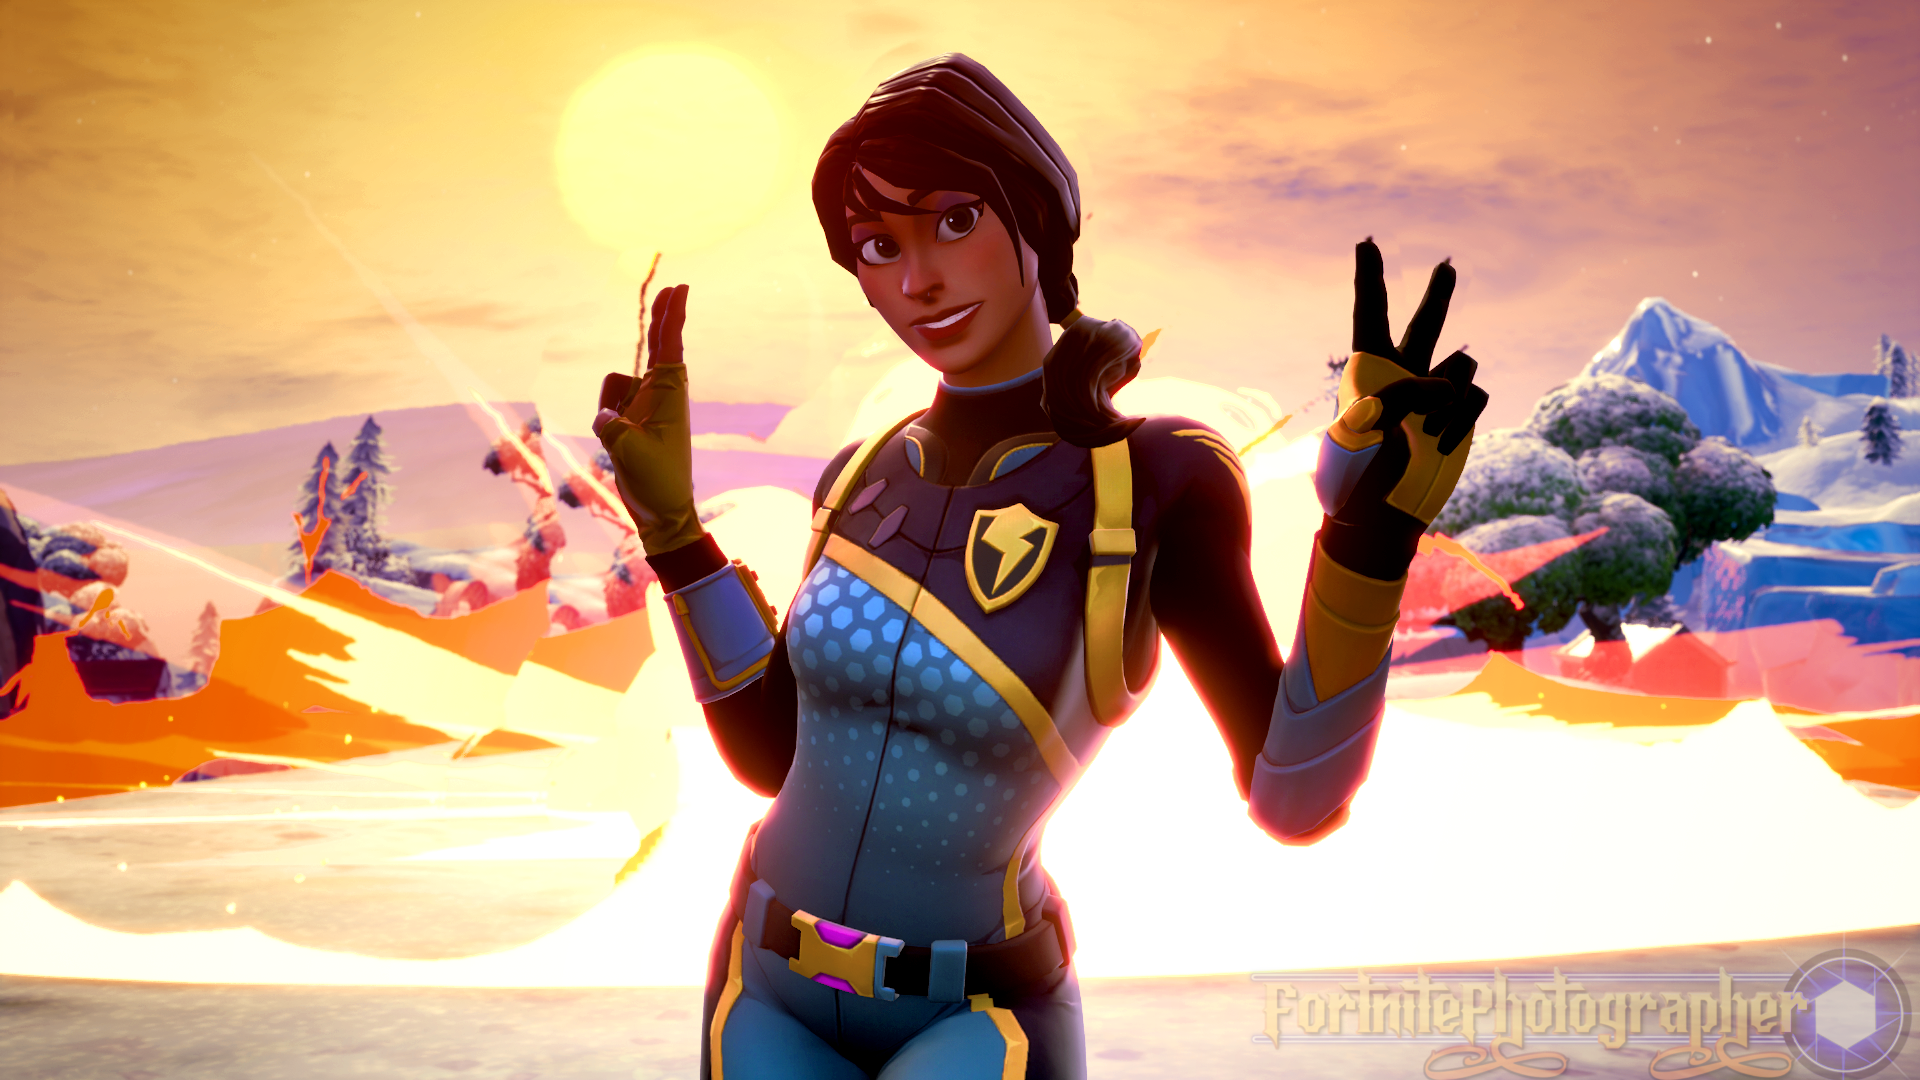 Time To Crush Them The New Bolt Outfit Is Here Thanks For The Support And Shares Love You All Best Gaming Wallpapers Gamer Pics Gaming Wallpapers